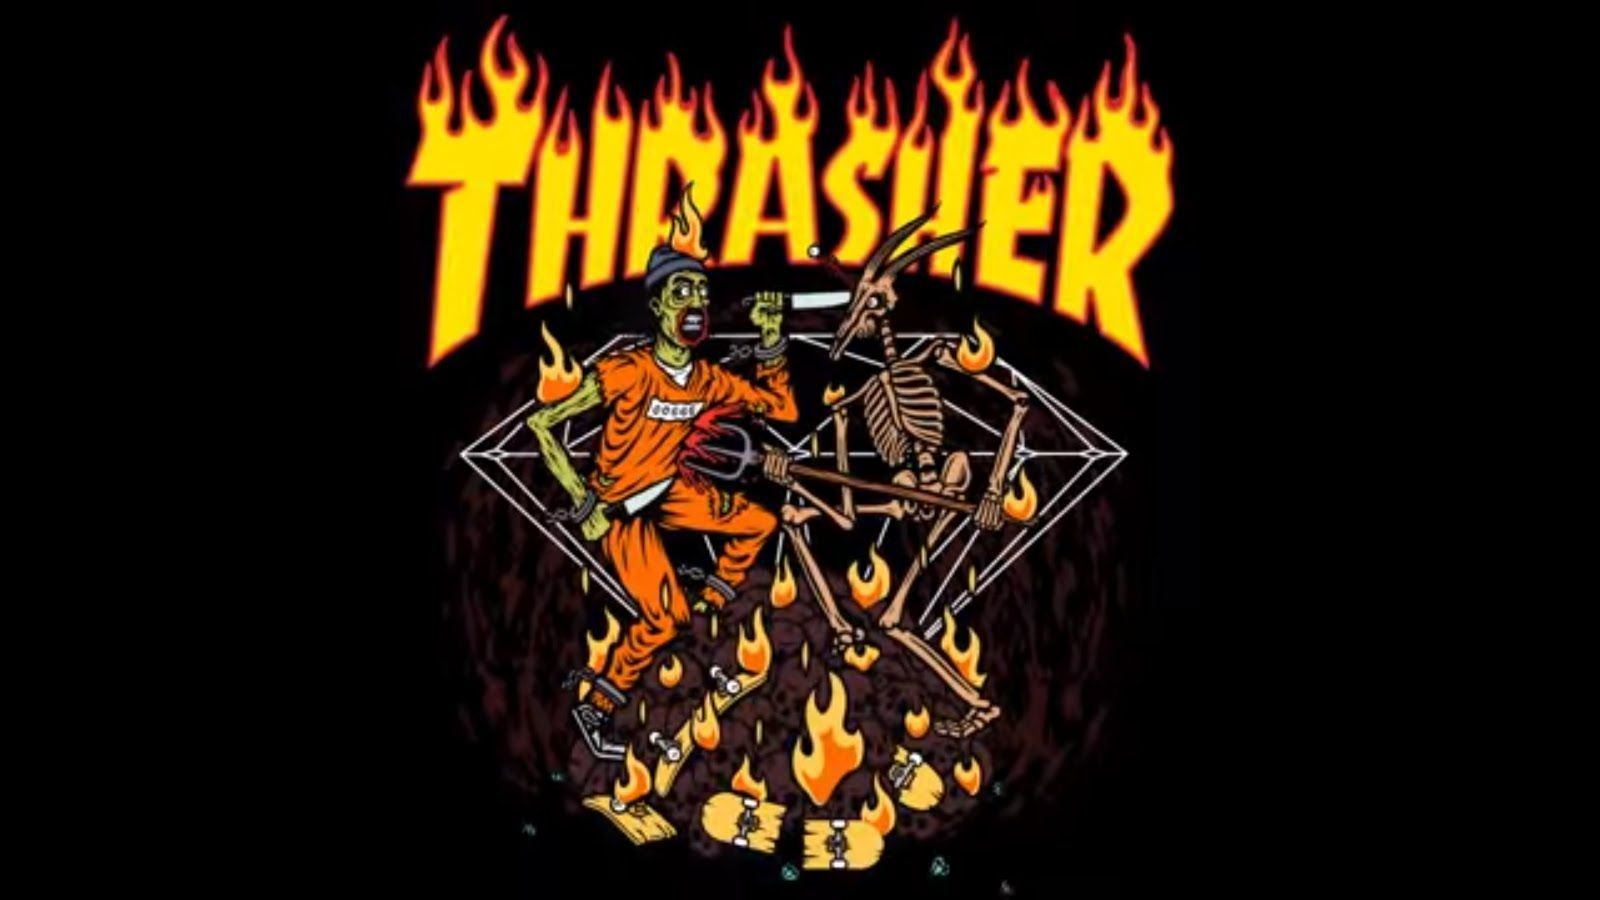 Thrasher Wallpapers Top Free Thrasher Backgrounds Wallpaperaccess